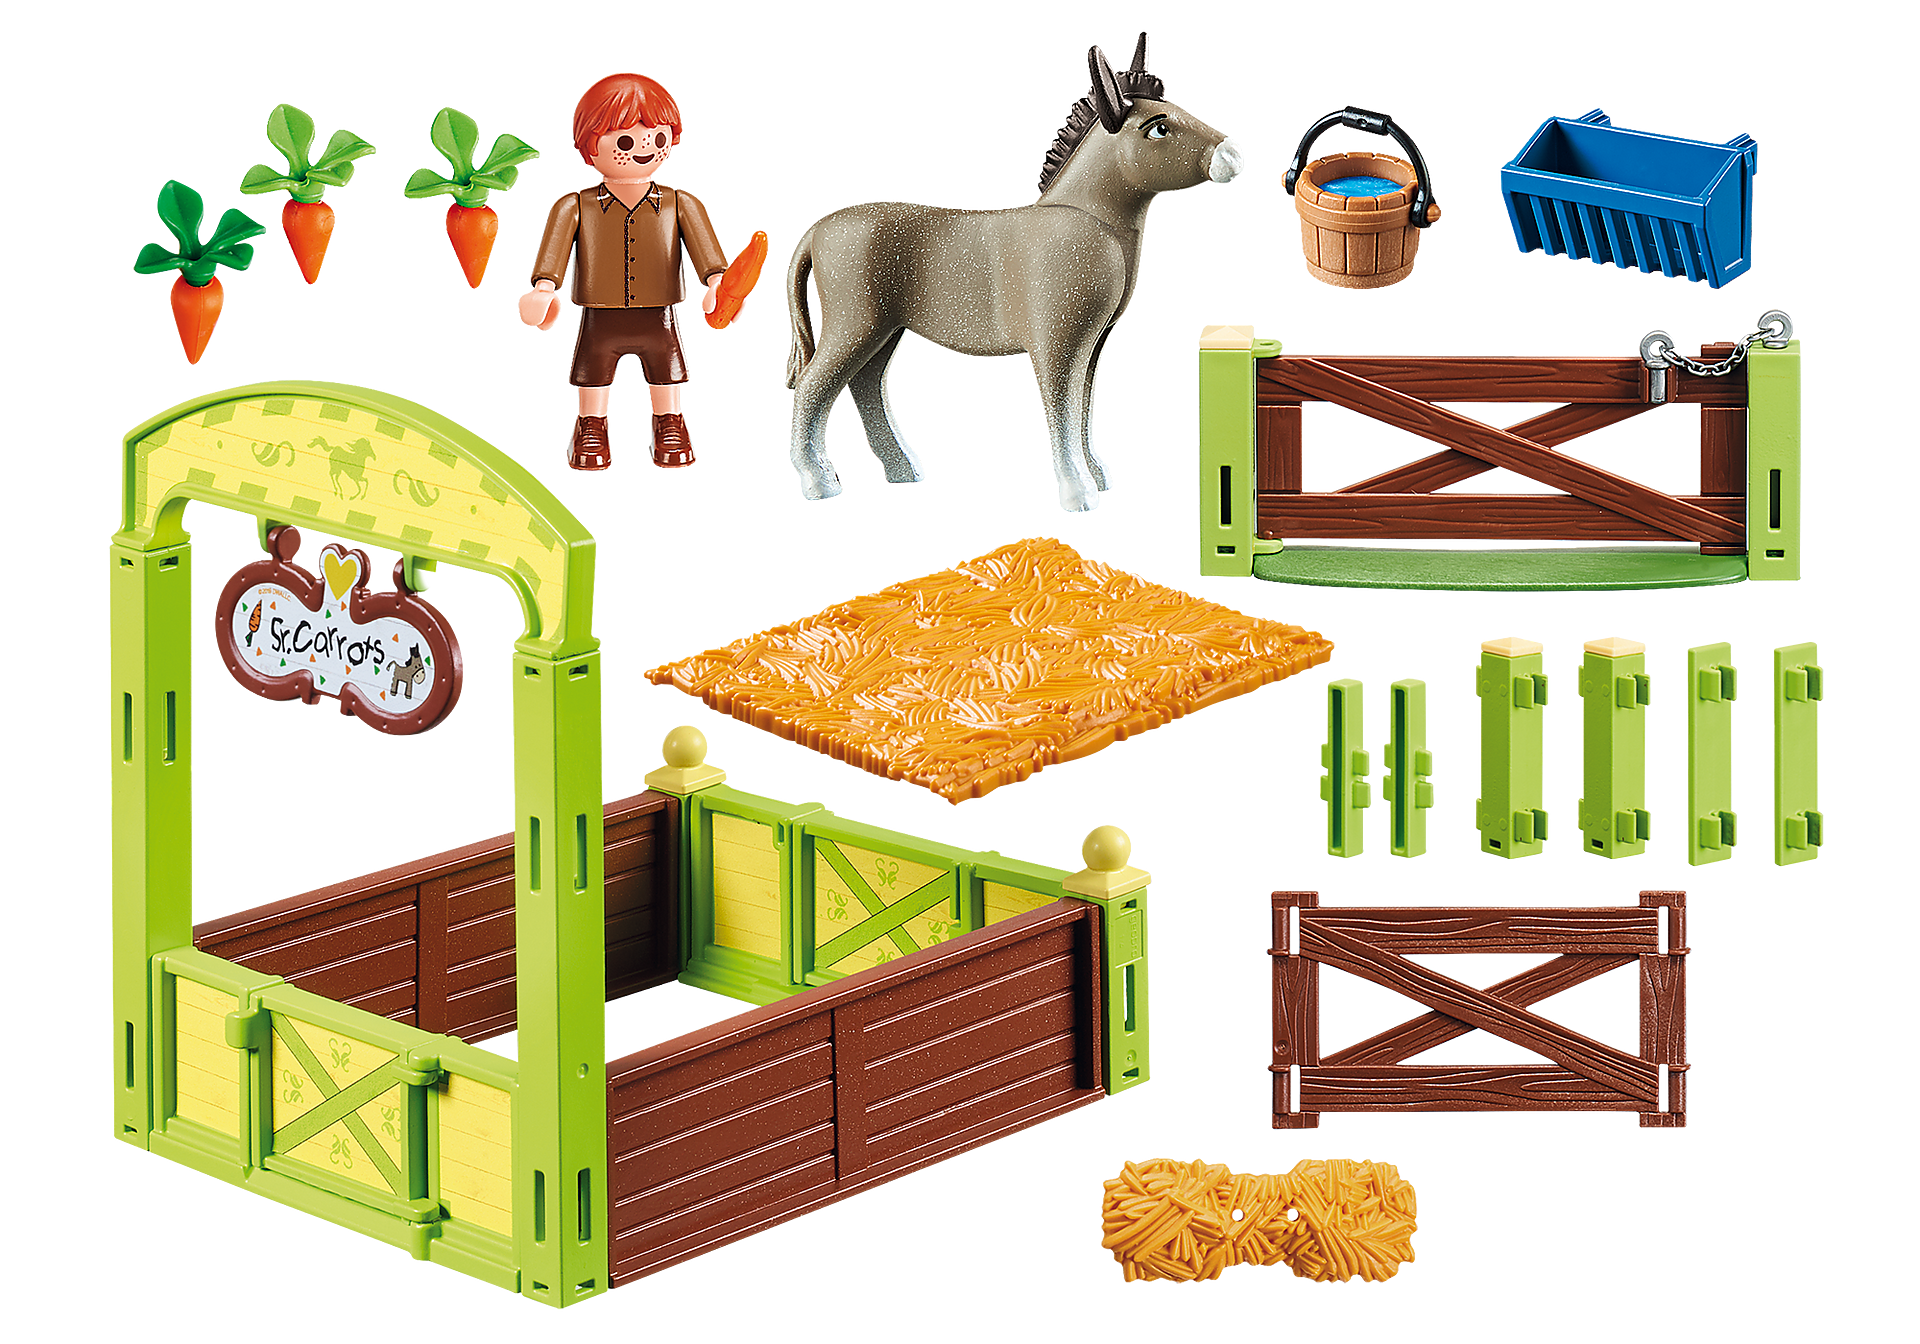 70120 Snips and Señor Carrots with Horse Stall zoom image3